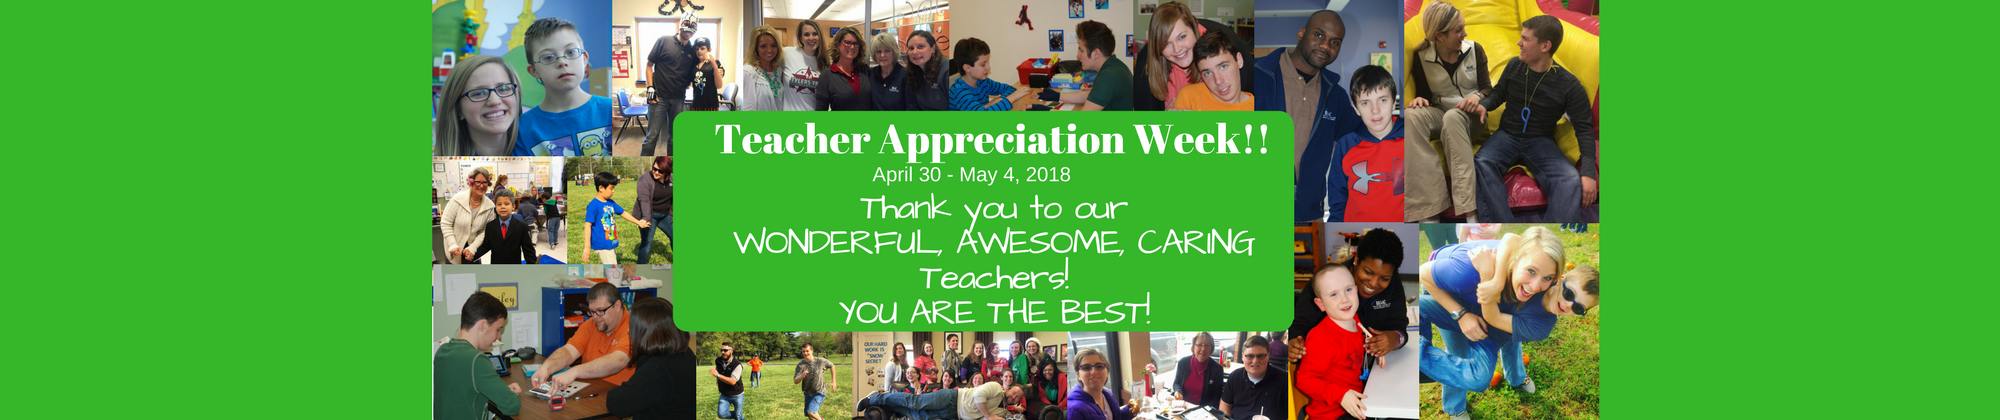 Teacher-Appreciation-Week-2018